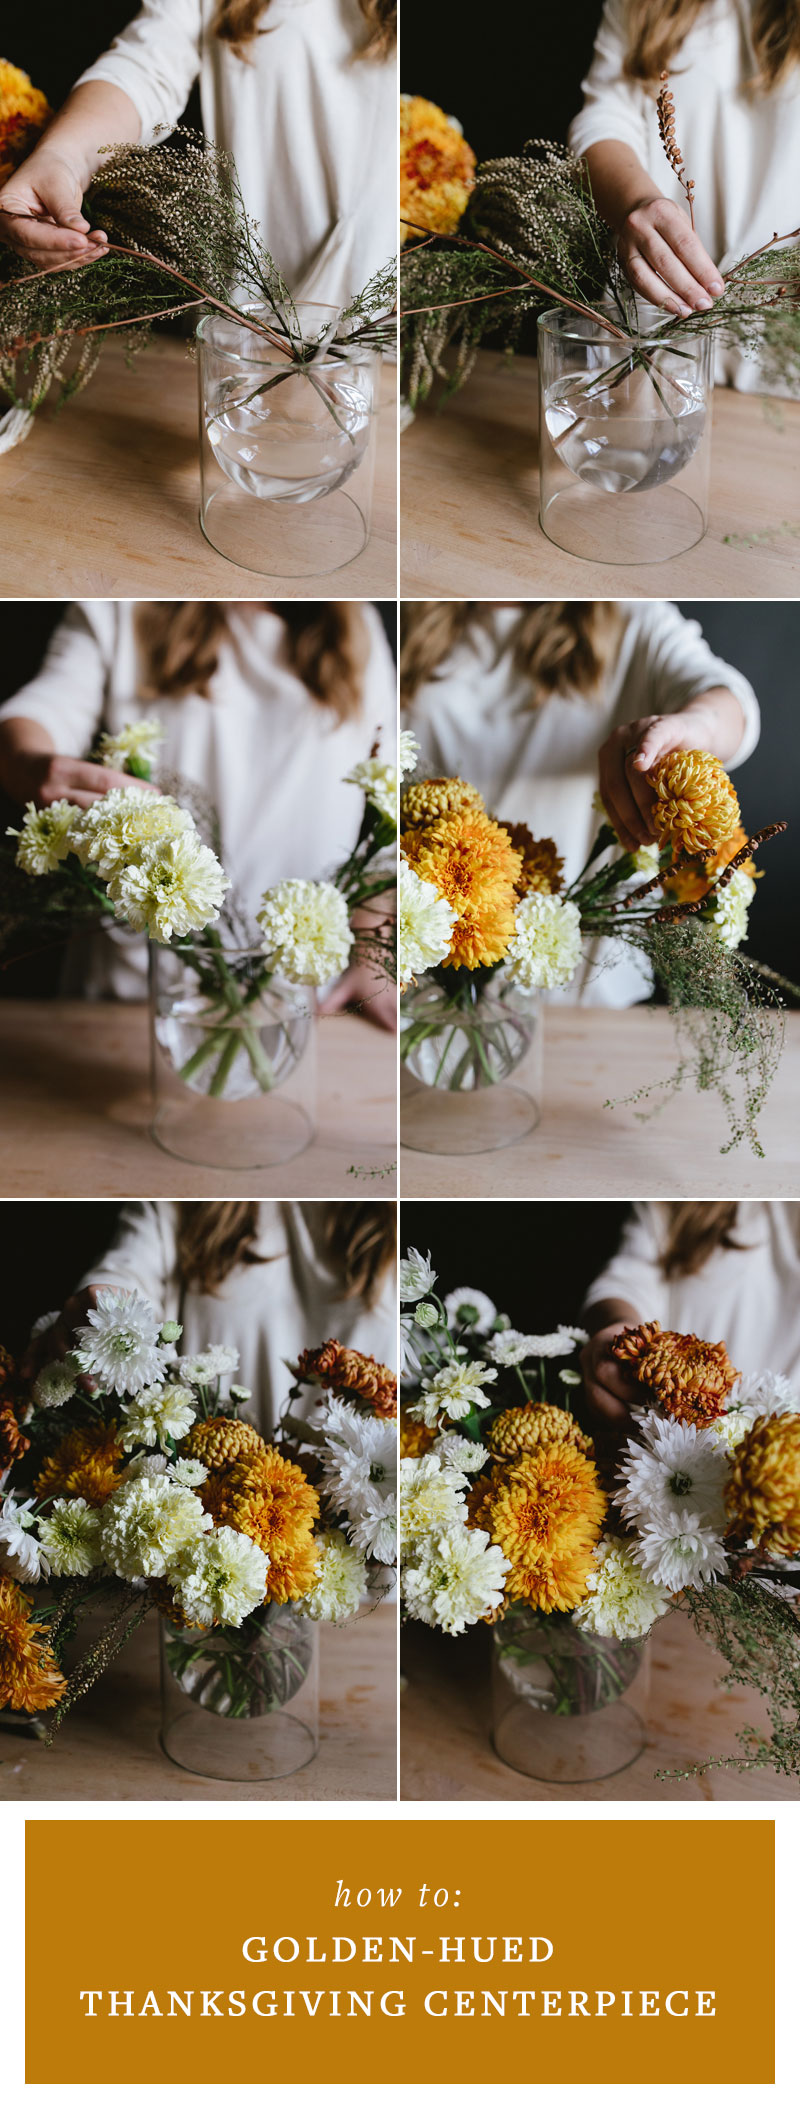 A Golden-Hued Thanksgiving Floral Centerpiece DIY with mums, marigolds, foraged branches, and more! #flowerarrangement #floralarrangement #flowerarranging #centerpiece #DIY #craft #thanksgiving #fall #thanksgivingdecor  #florals #flowers #fallflowers